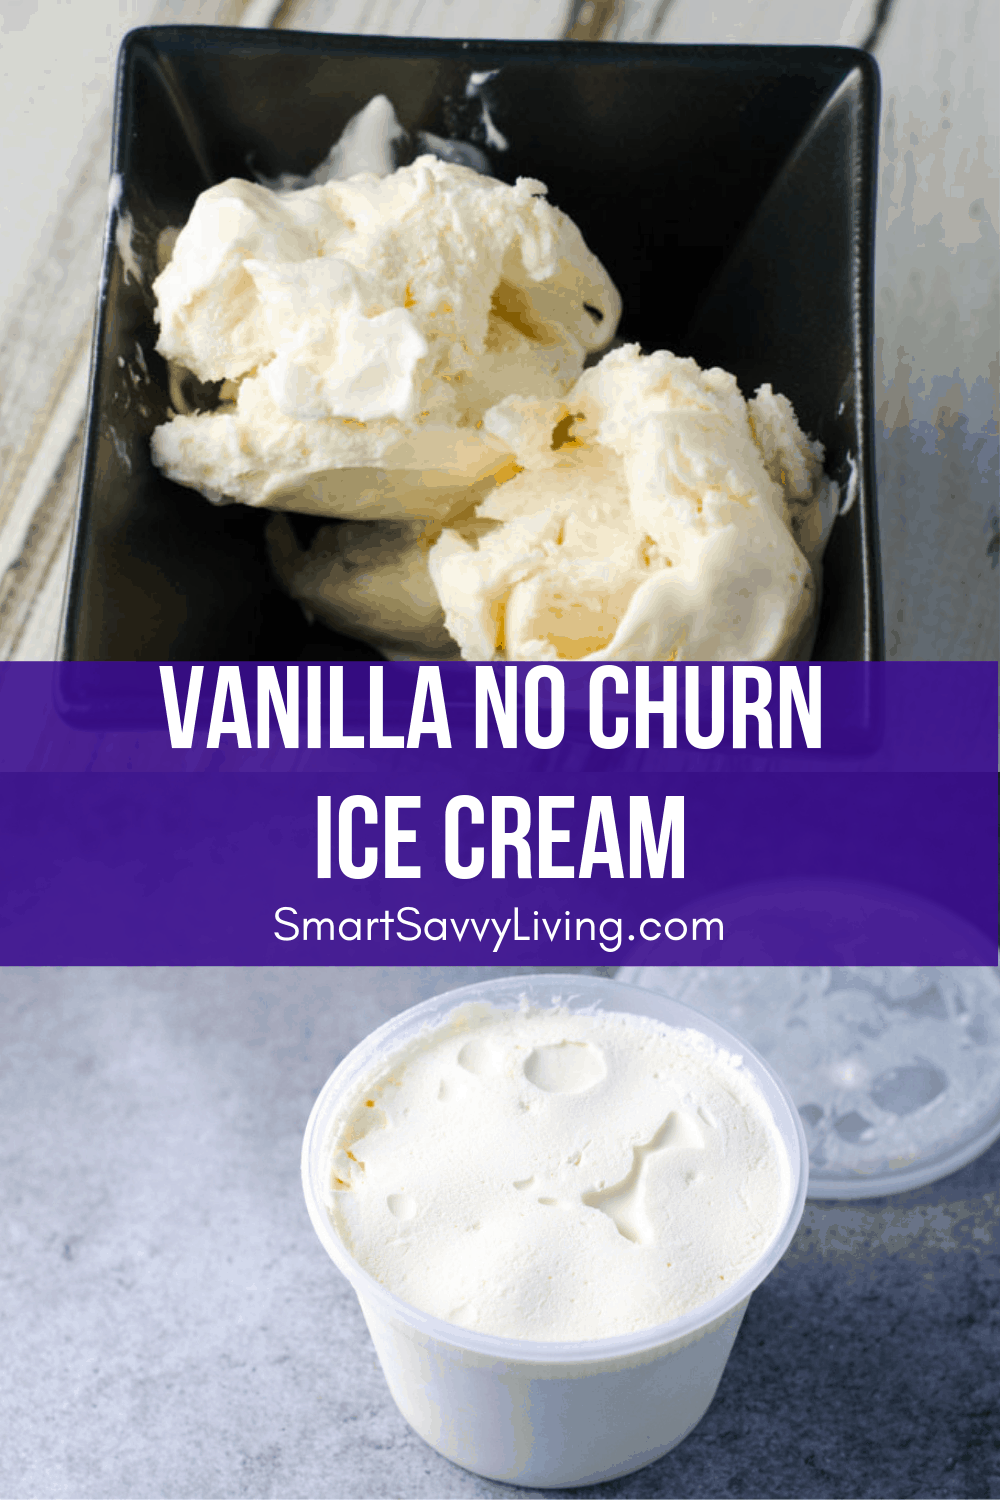 Vanilla No Churn Ice Cream Recipe 4